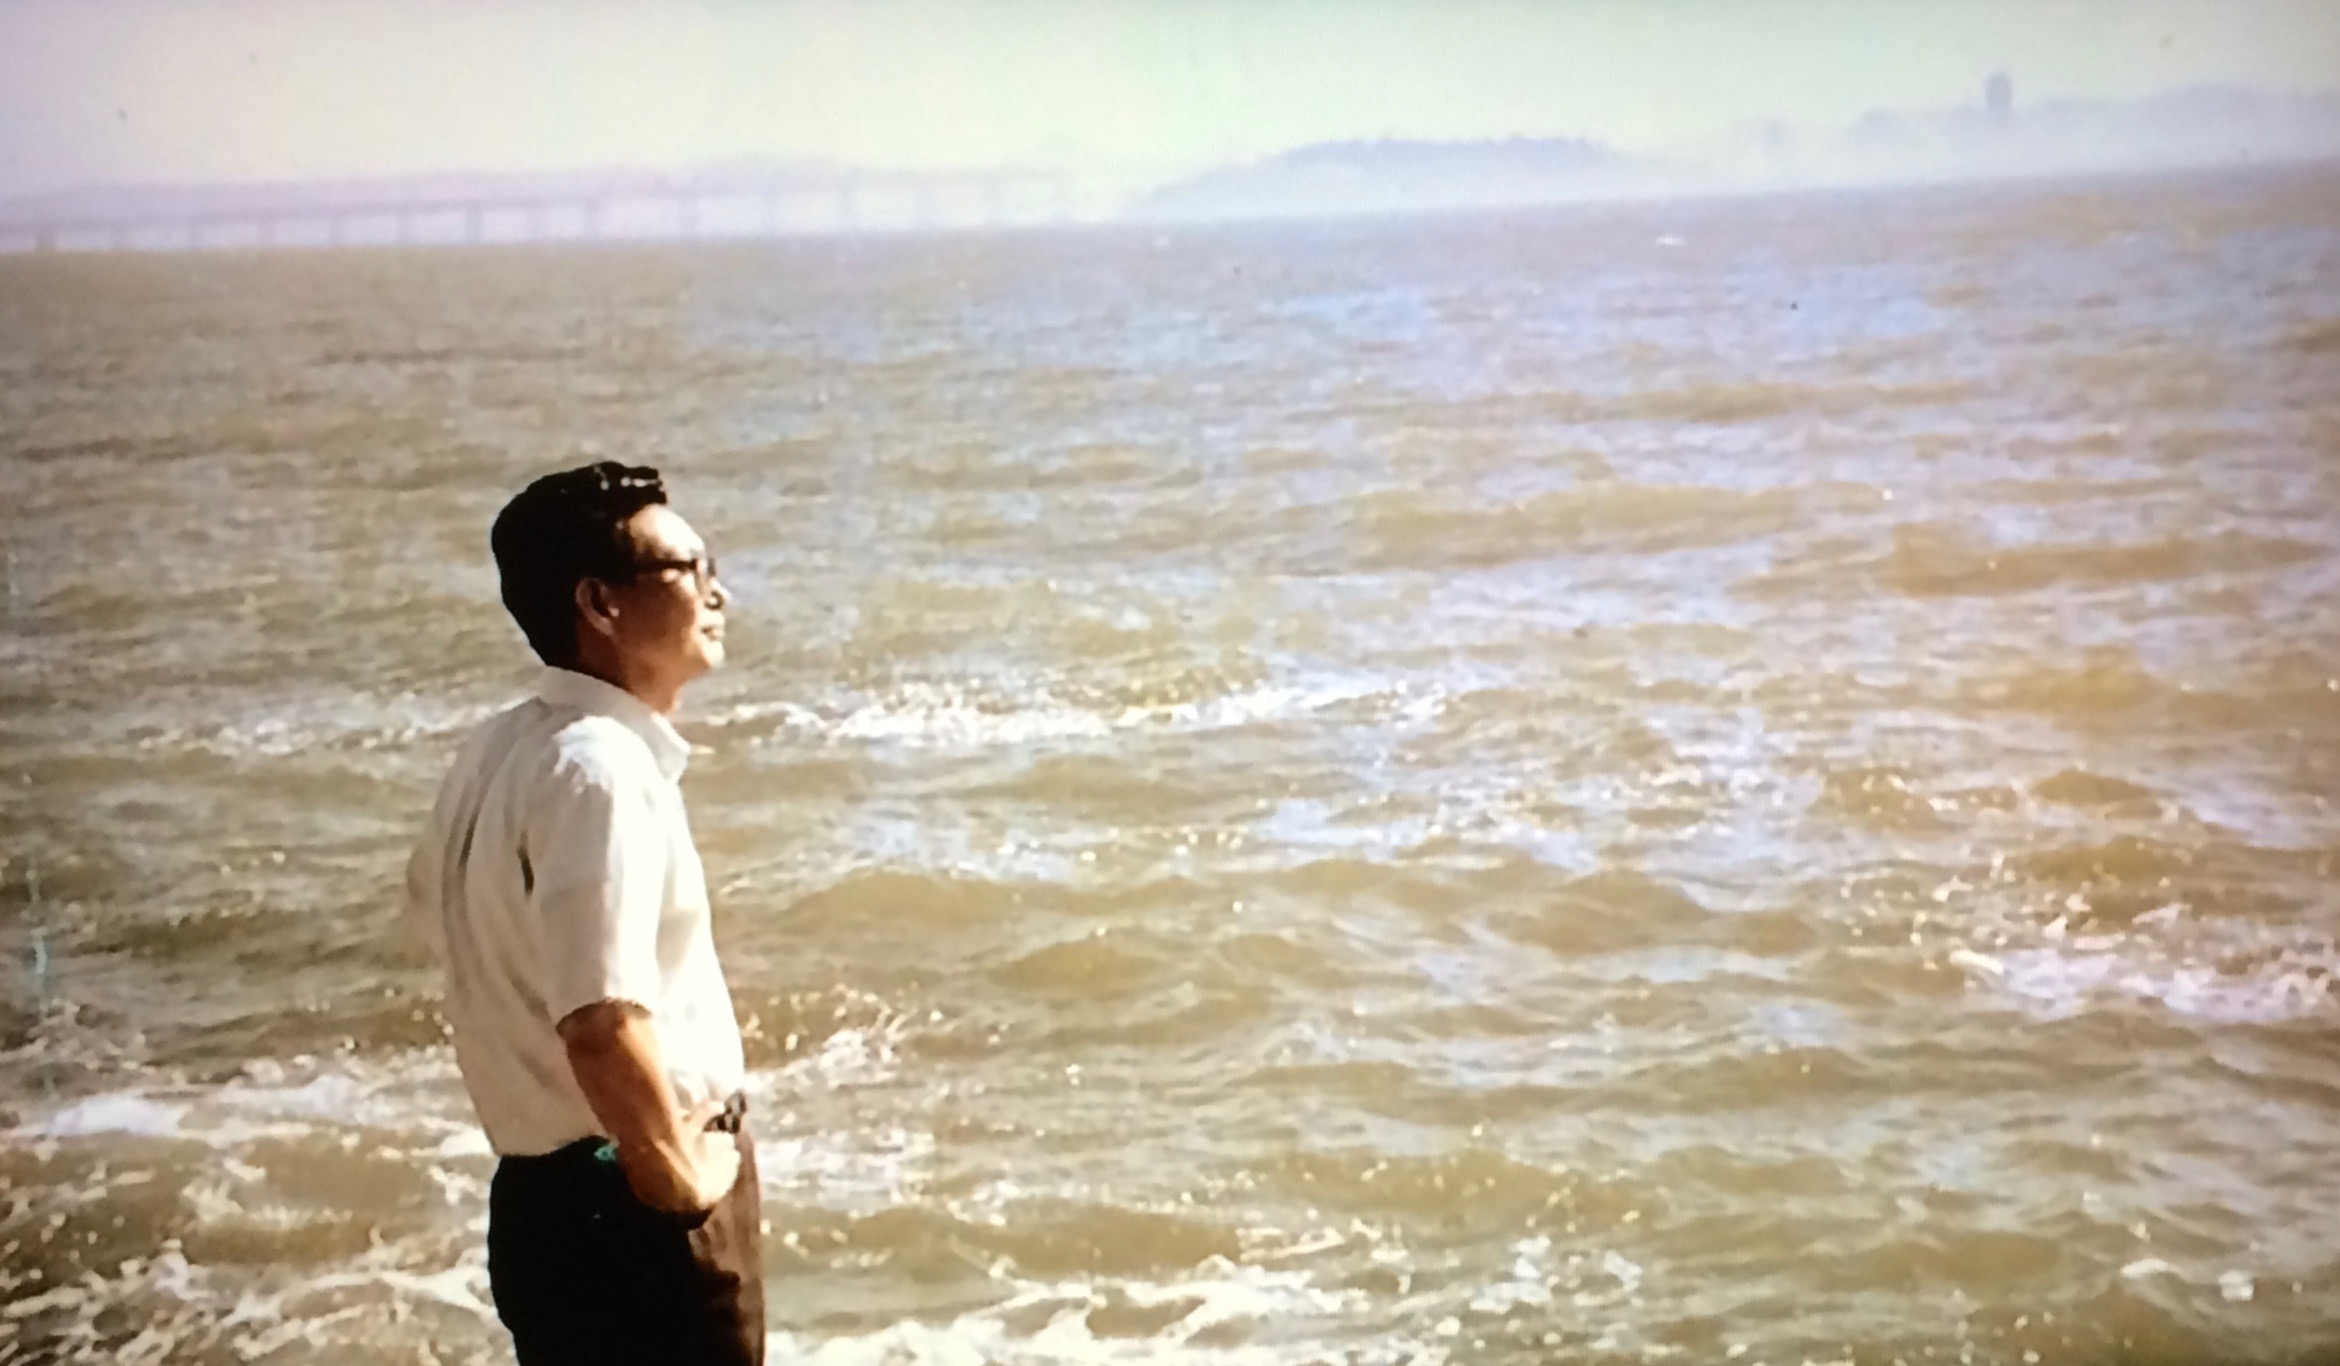 My father at Berkeley looking out over the bay, copyright Heidi M. Kim